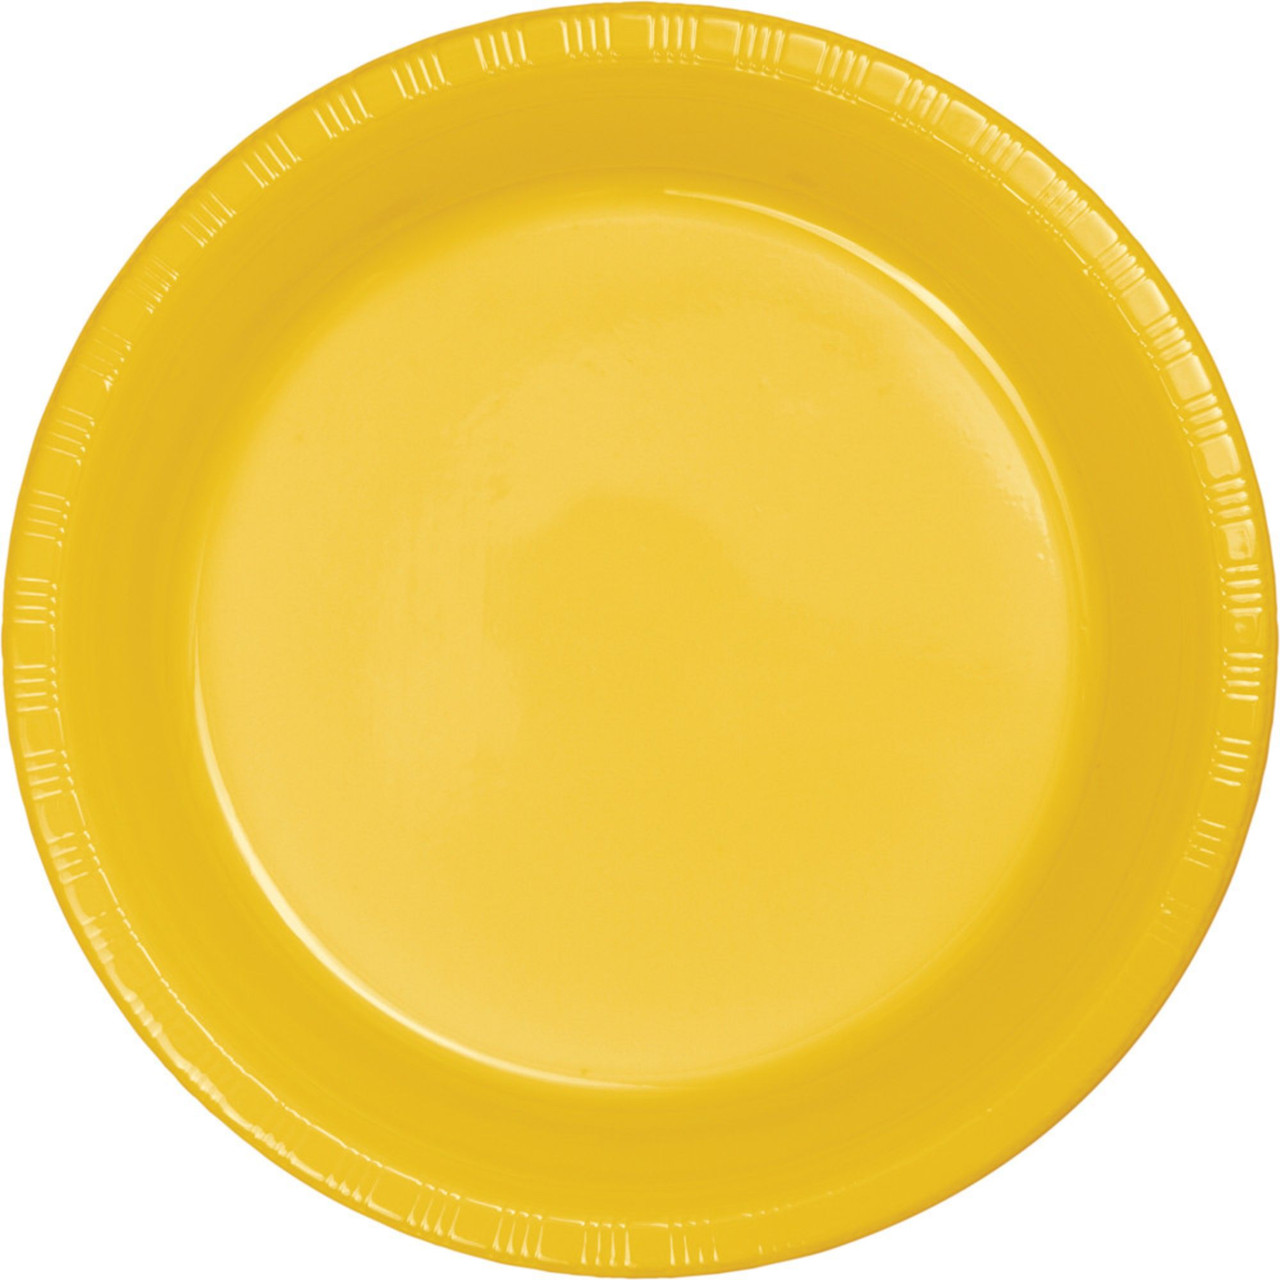 Club Pack of 600 School Bus Yellow Disposable Plastic Party Dinner Plates 8.75  - 31377703  sc 1 st  Christmas Central & Club Pack of 600 School Bus Yellow Disposable Plastic Party Dinner ...